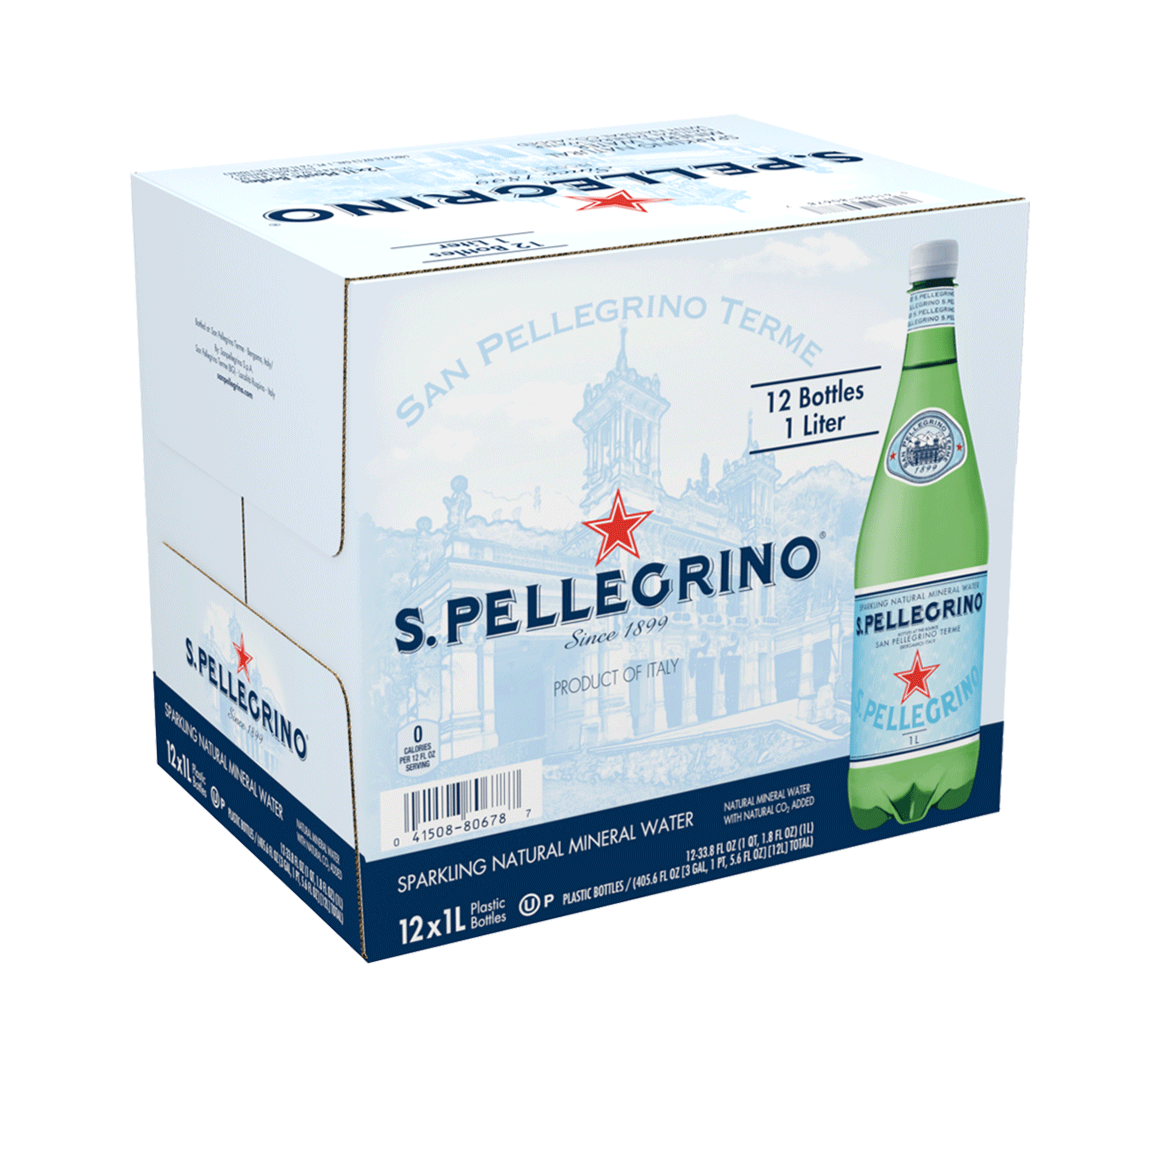 S.Pellegrino® Sparkling Natural Mineral Water Plastic Bottle Image1